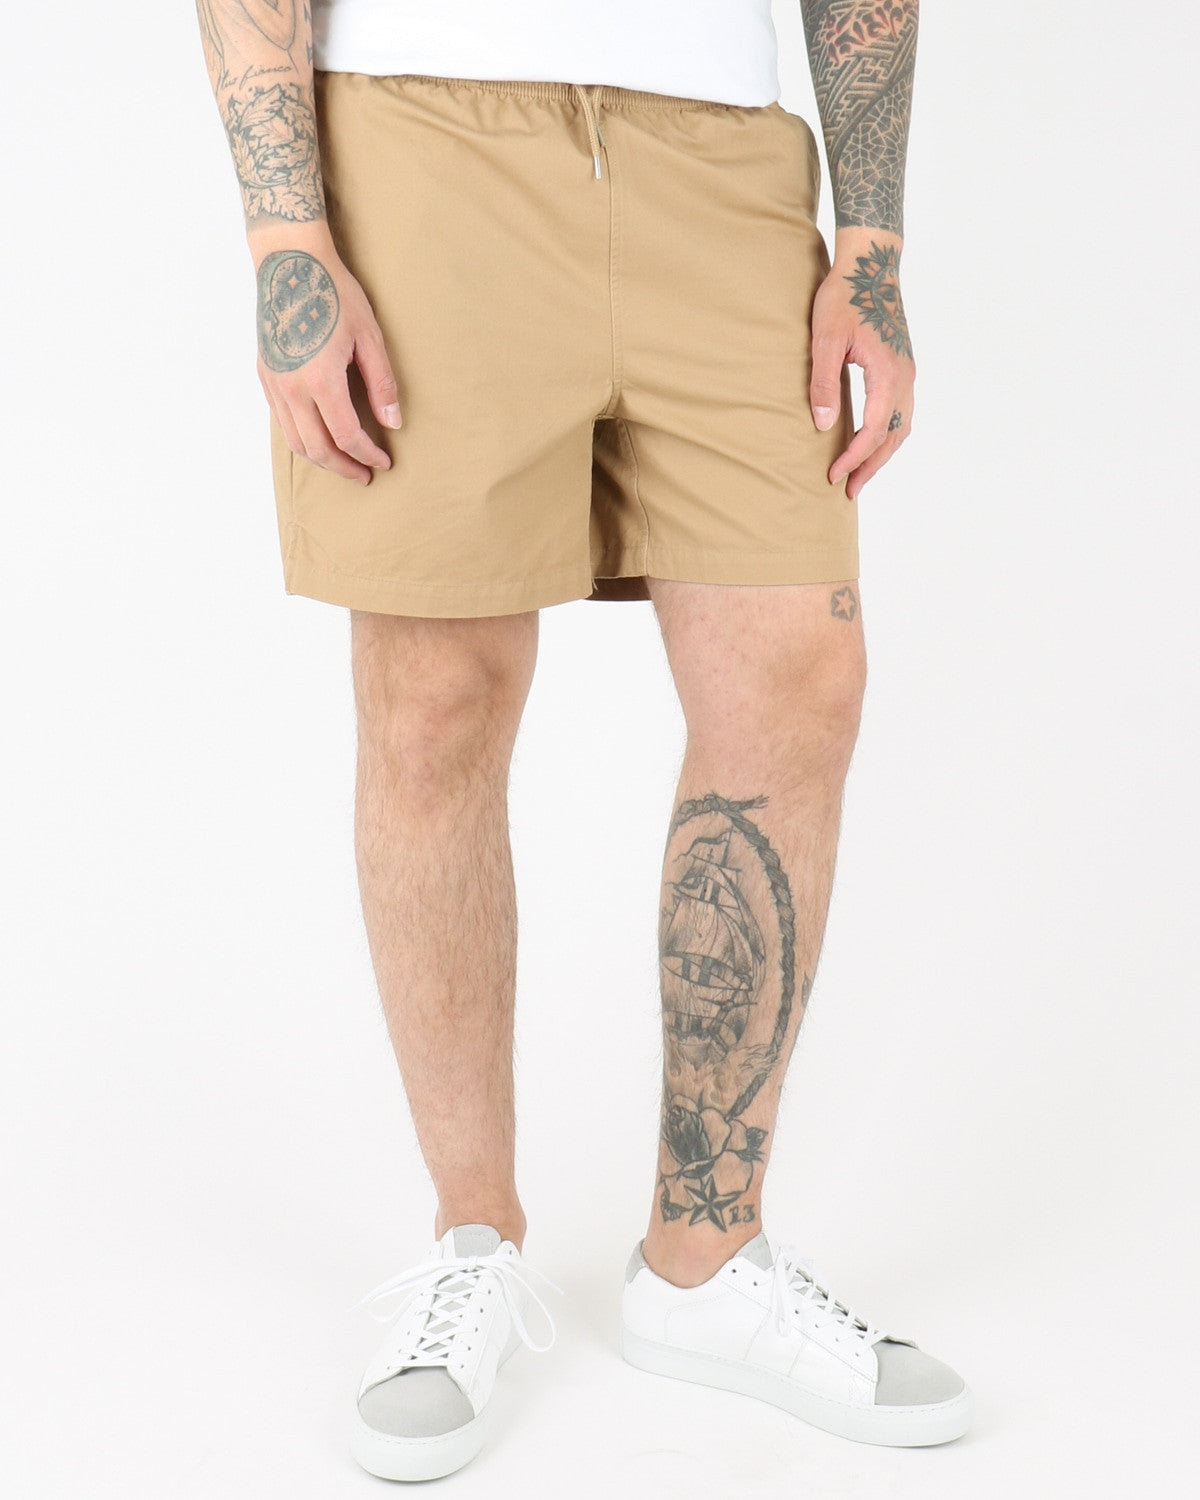 wac we are copenhagen_rivaldo shorts_khaki_view_2_2